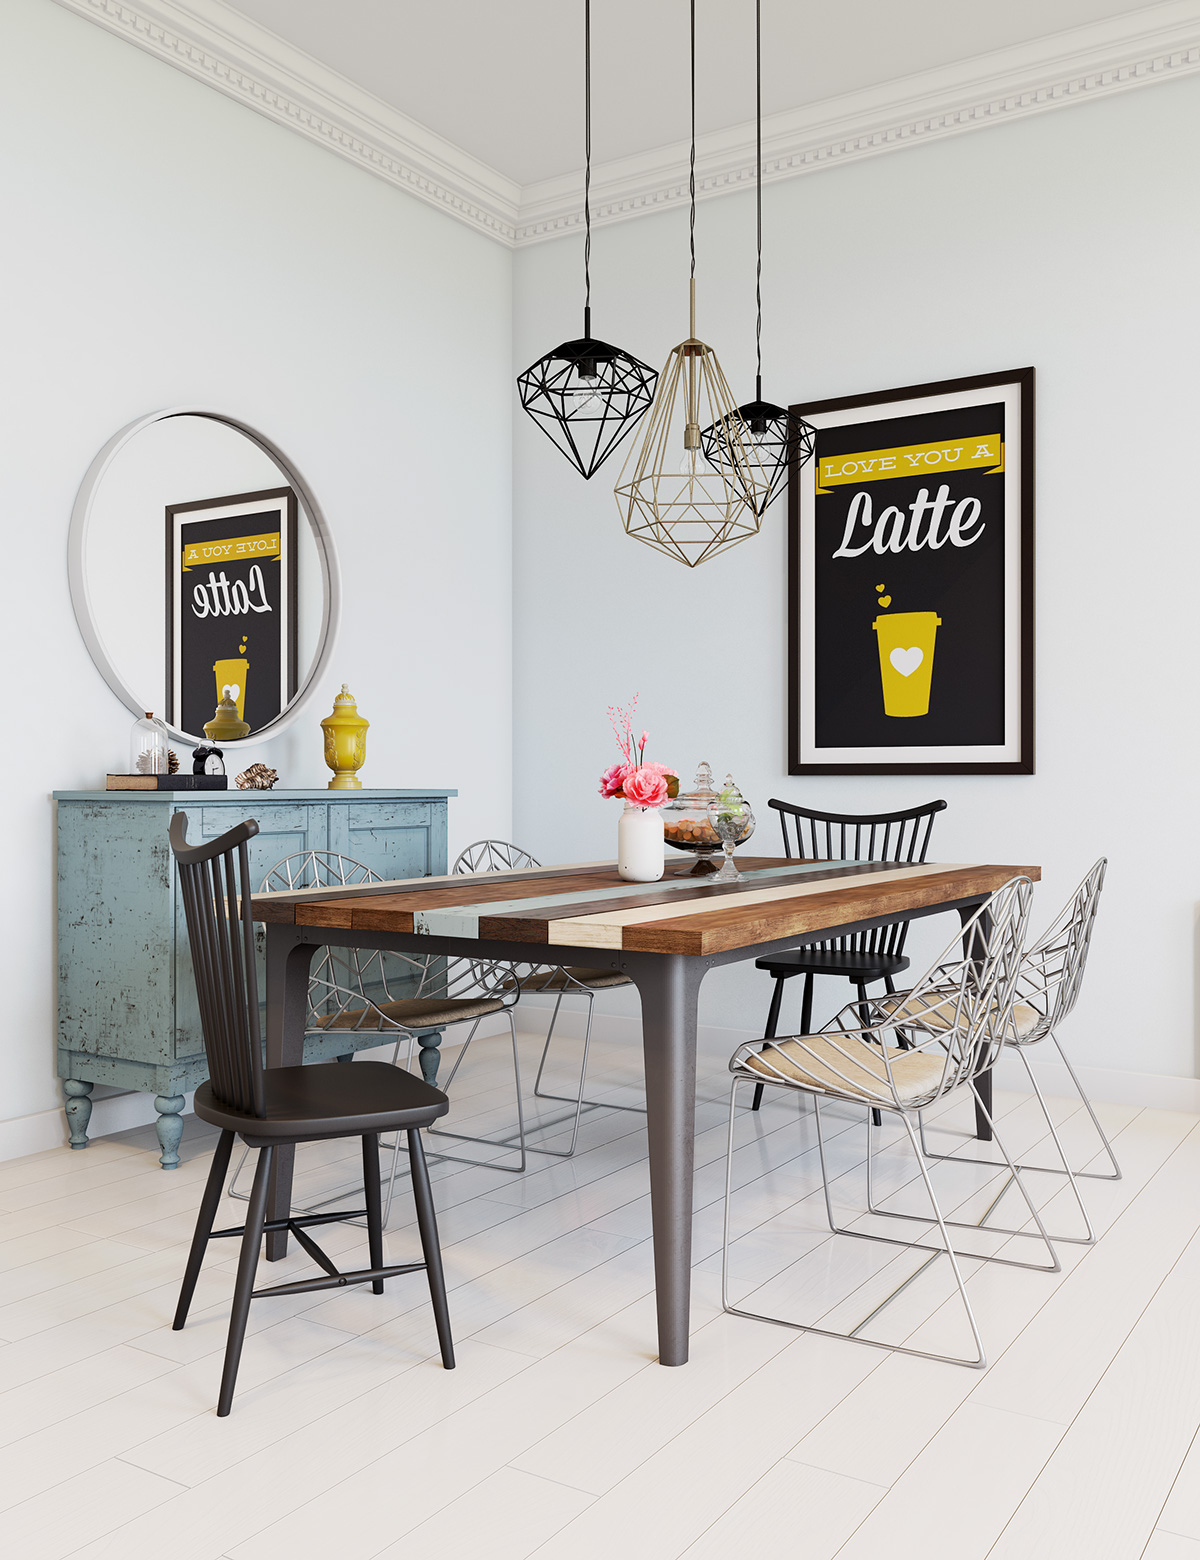 Best Dining Table Scandinavian amazing scandinavian dining table 19 for your small home remodel ideas with scandinavian dining table best Scandinavian Dining Room Design Ideas Inspiration